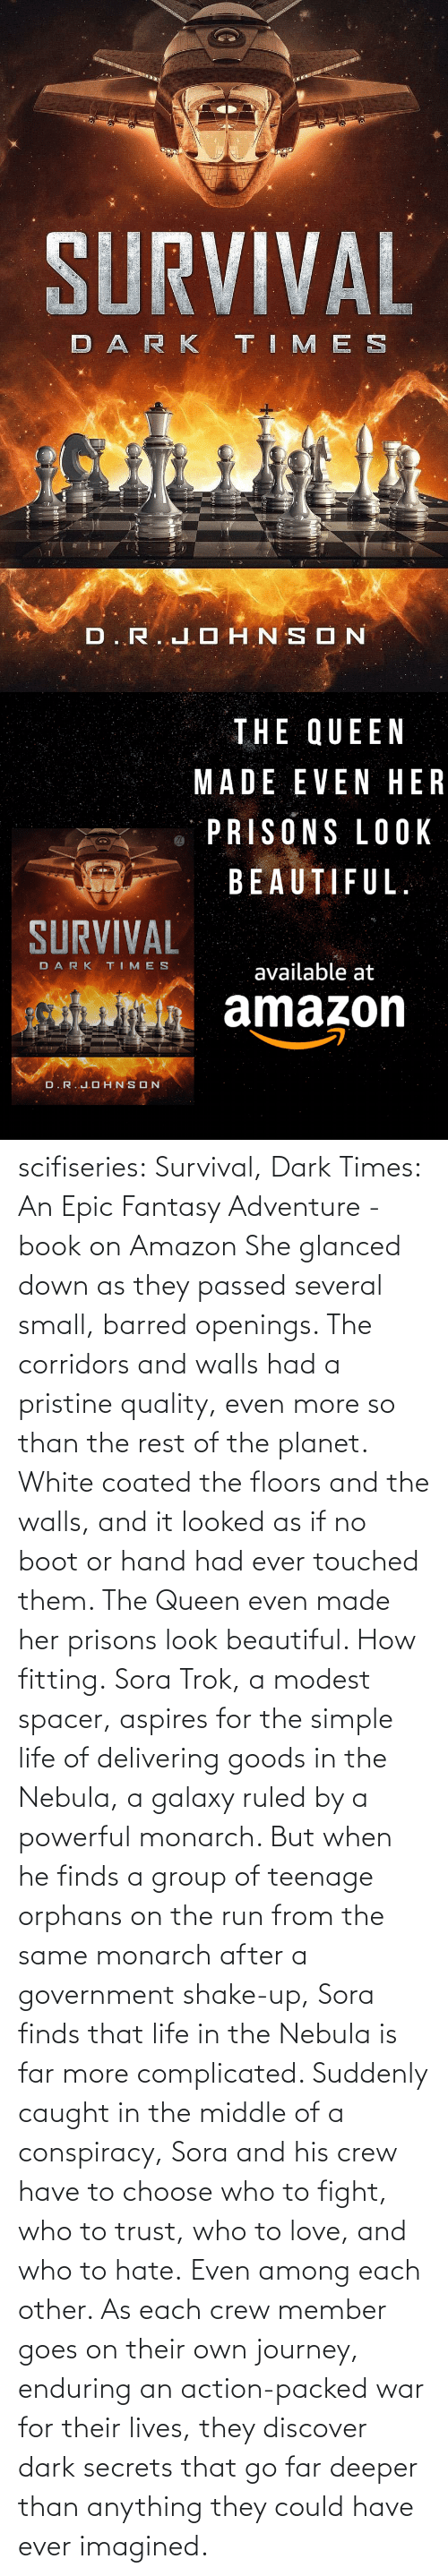 Even: scifiseries: Survival, Dark Times: An Epic Fantasy Adventure - book on Amazon  She glanced down as they  passed several small, barred openings. The corridors and walls had a  pristine quality, even more so than the rest of the planet. White coated  the floors and the walls, and it looked as if no boot or hand had ever  touched them.  The Queen even made her prisons look beautiful.  How fitting. Sora  Trok, a modest spacer, aspires for the simple life of delivering goods  in the Nebula, a galaxy ruled by a powerful monarch. But when he finds a  group of teenage orphans on the run from the same monarch after a  government shake-up, Sora finds that life in the Nebula is far more complicated.  Suddenly  caught in the middle of a conspiracy, Sora and his crew have to choose  who to fight, who to trust, who to love, and who to hate. Even among each other.  As  each crew member goes on their own journey, enduring an action-packed  war for their lives, they discover dark secrets that go far deeper than  anything they could have ever imagined.